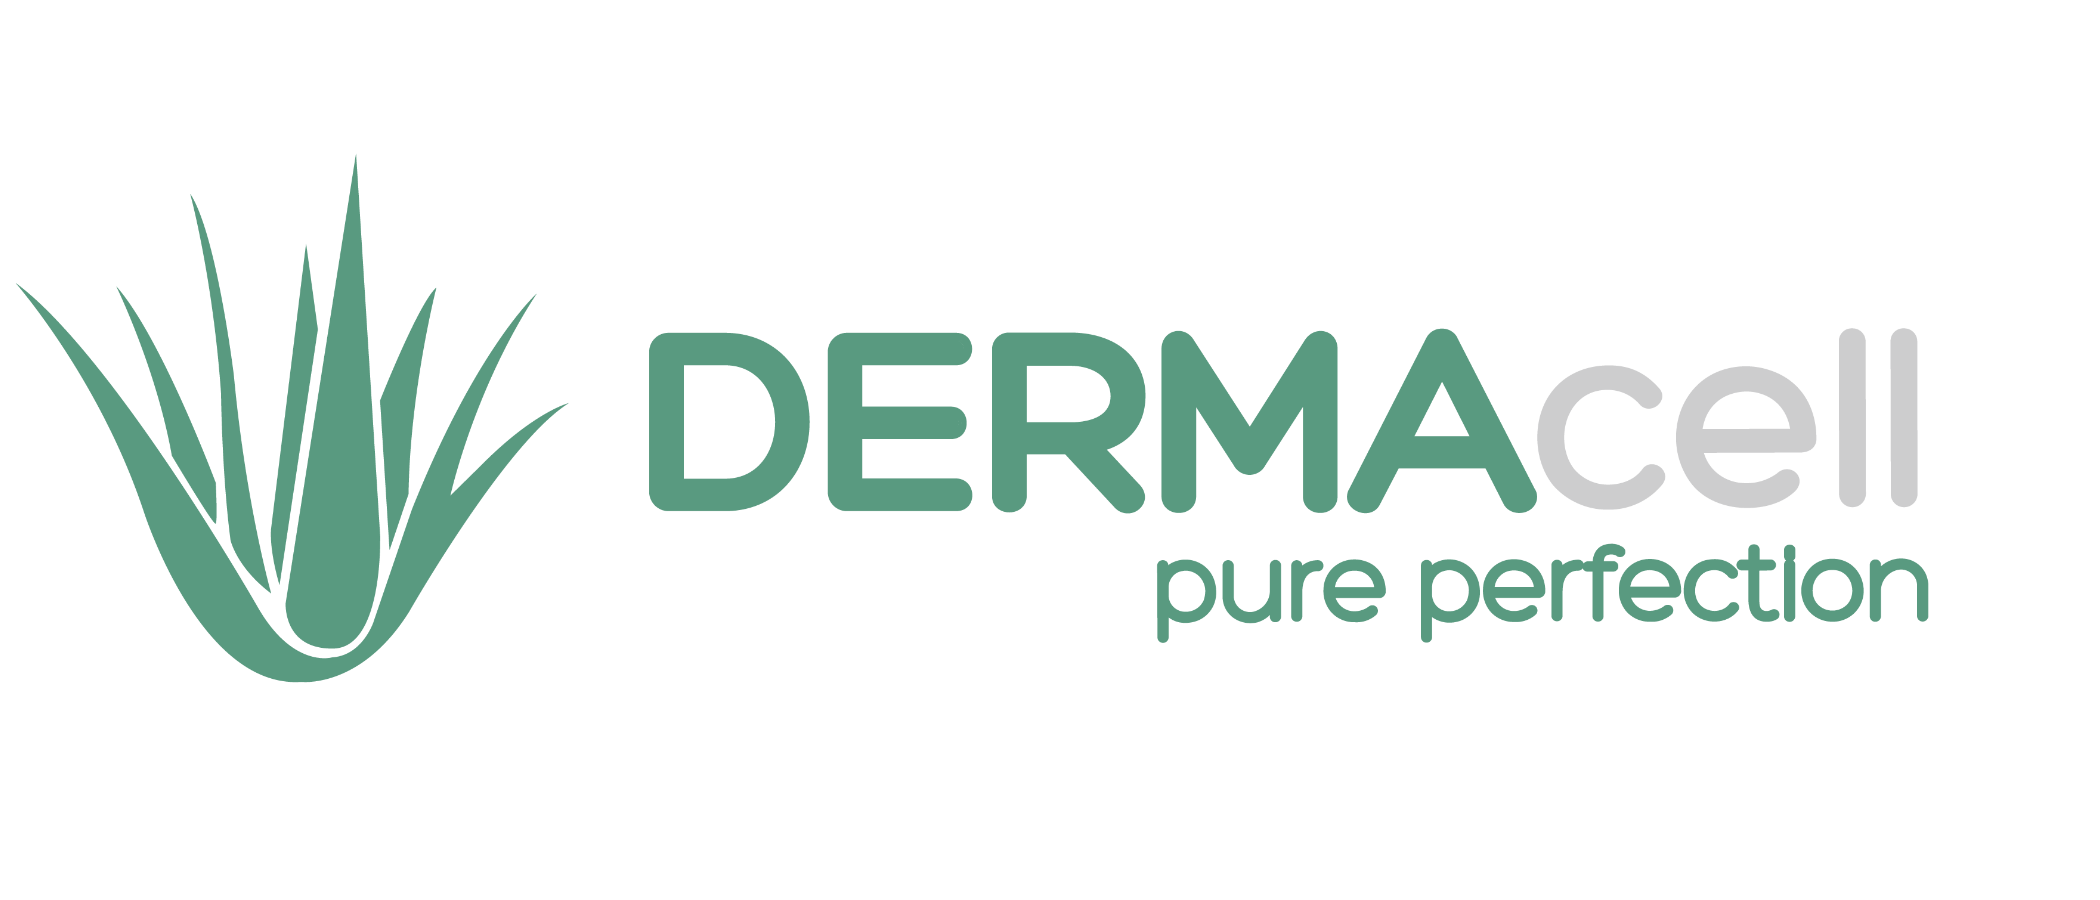 Dermacell Cosmetics & Healthcare